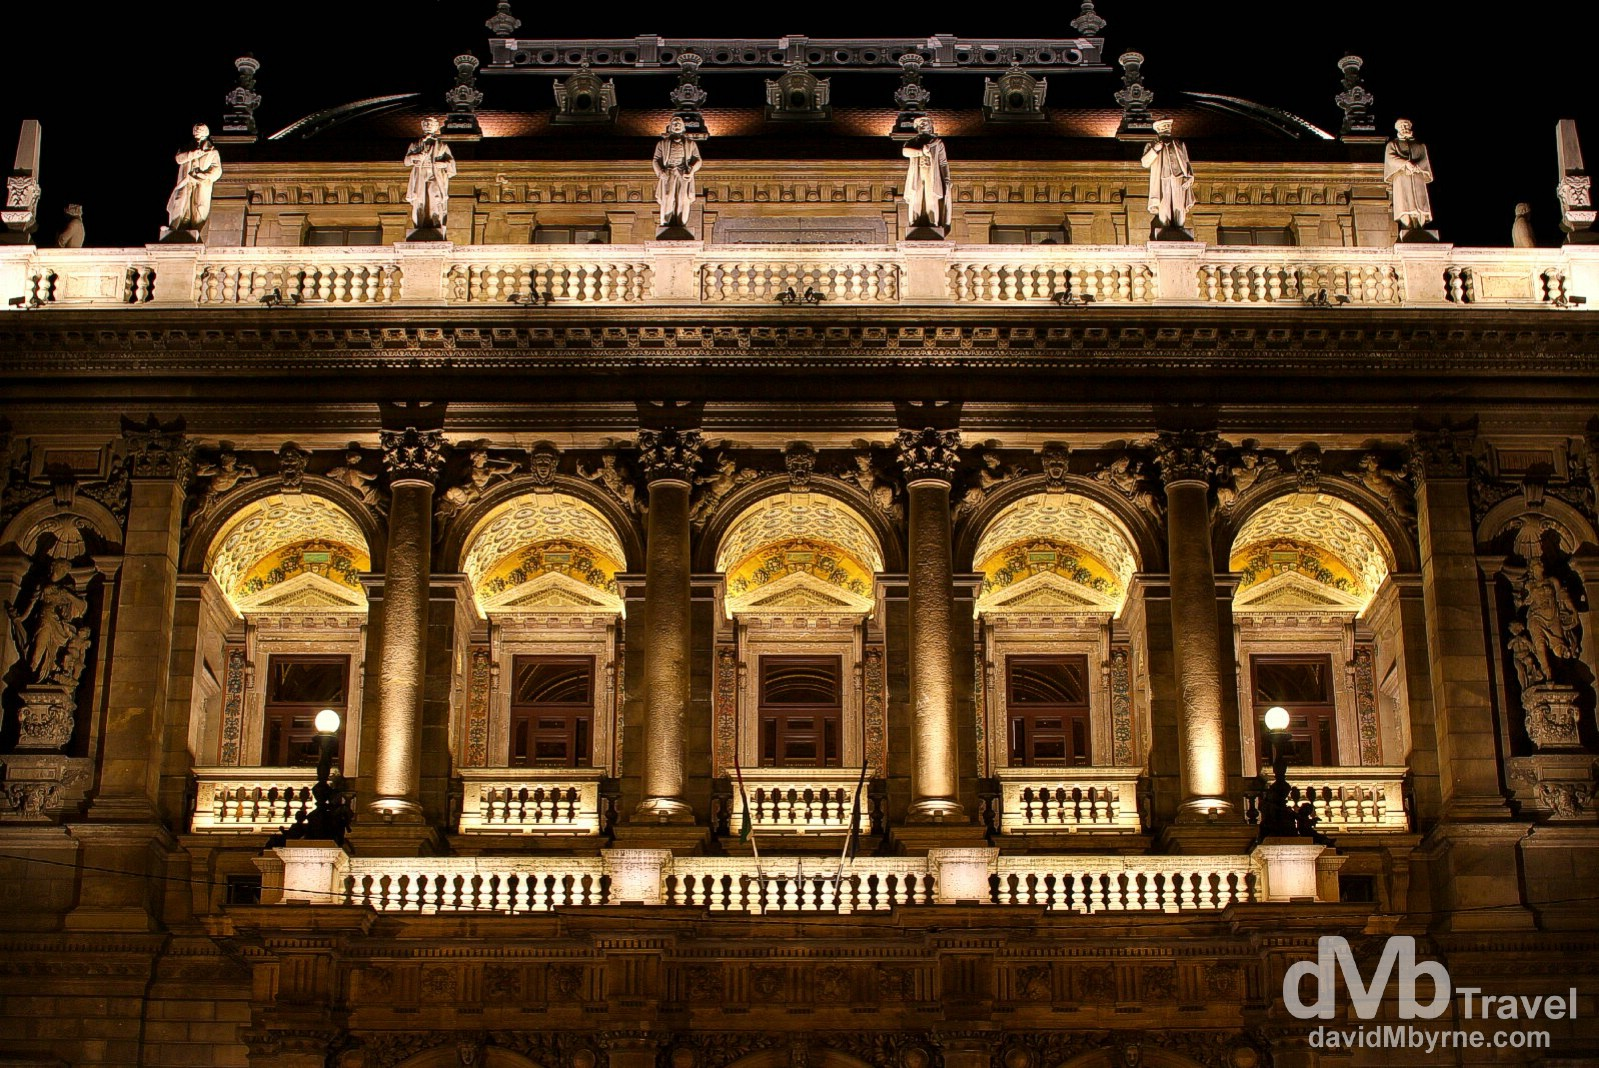 A section of the facade of Hungarian State Opera House in Budapest, Hungary. March 26, 2014.